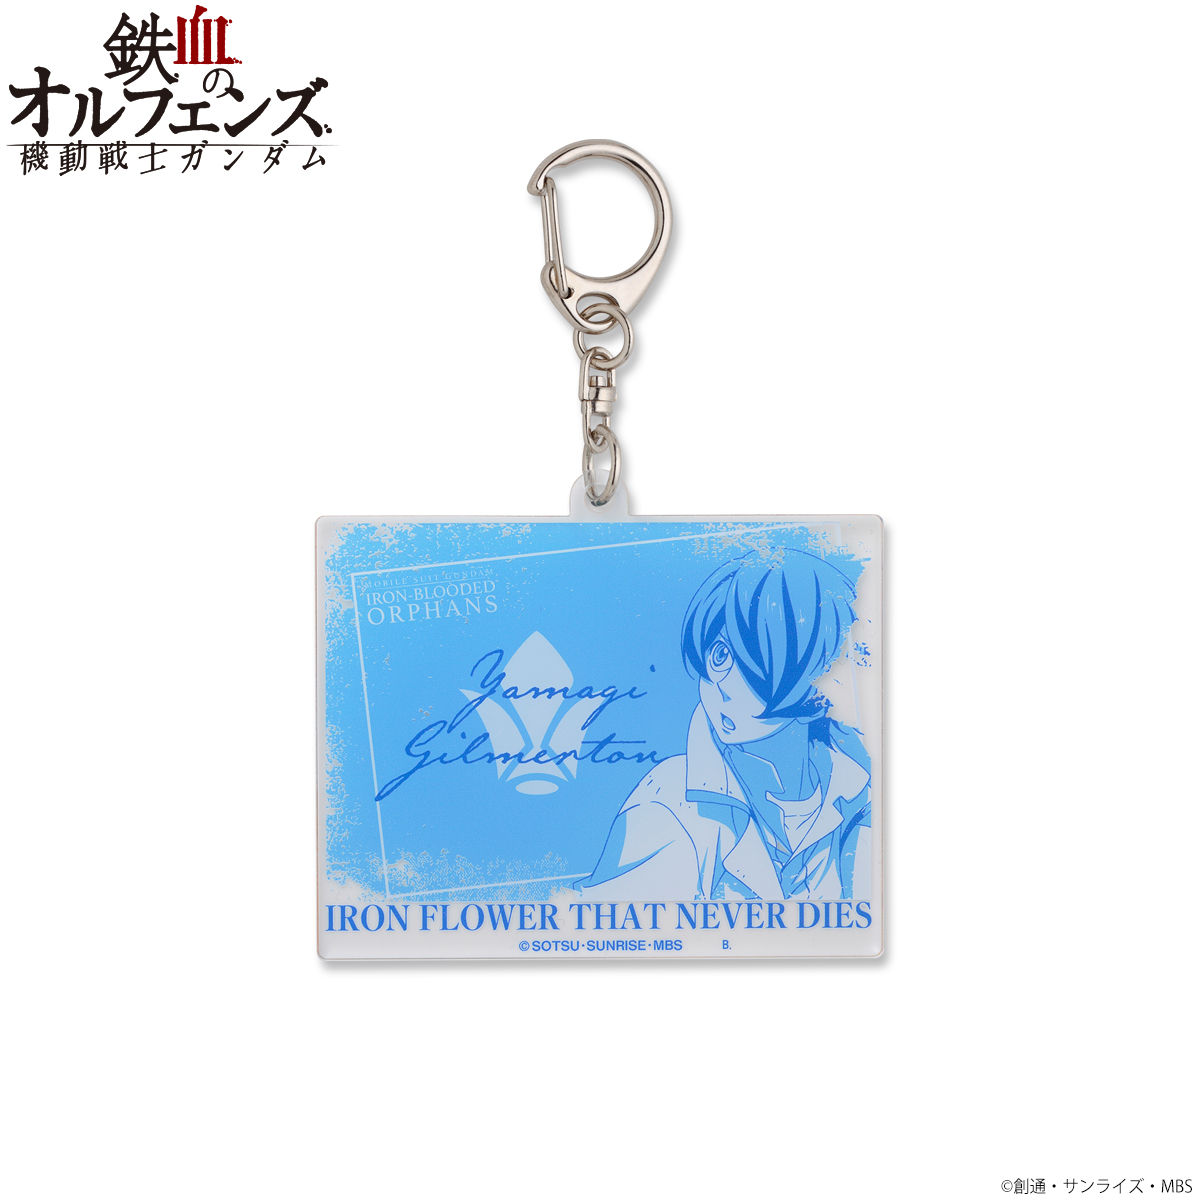 Mobile Suit Gundam: Iron-Blooded Orphans Tricolor-themed Keychain